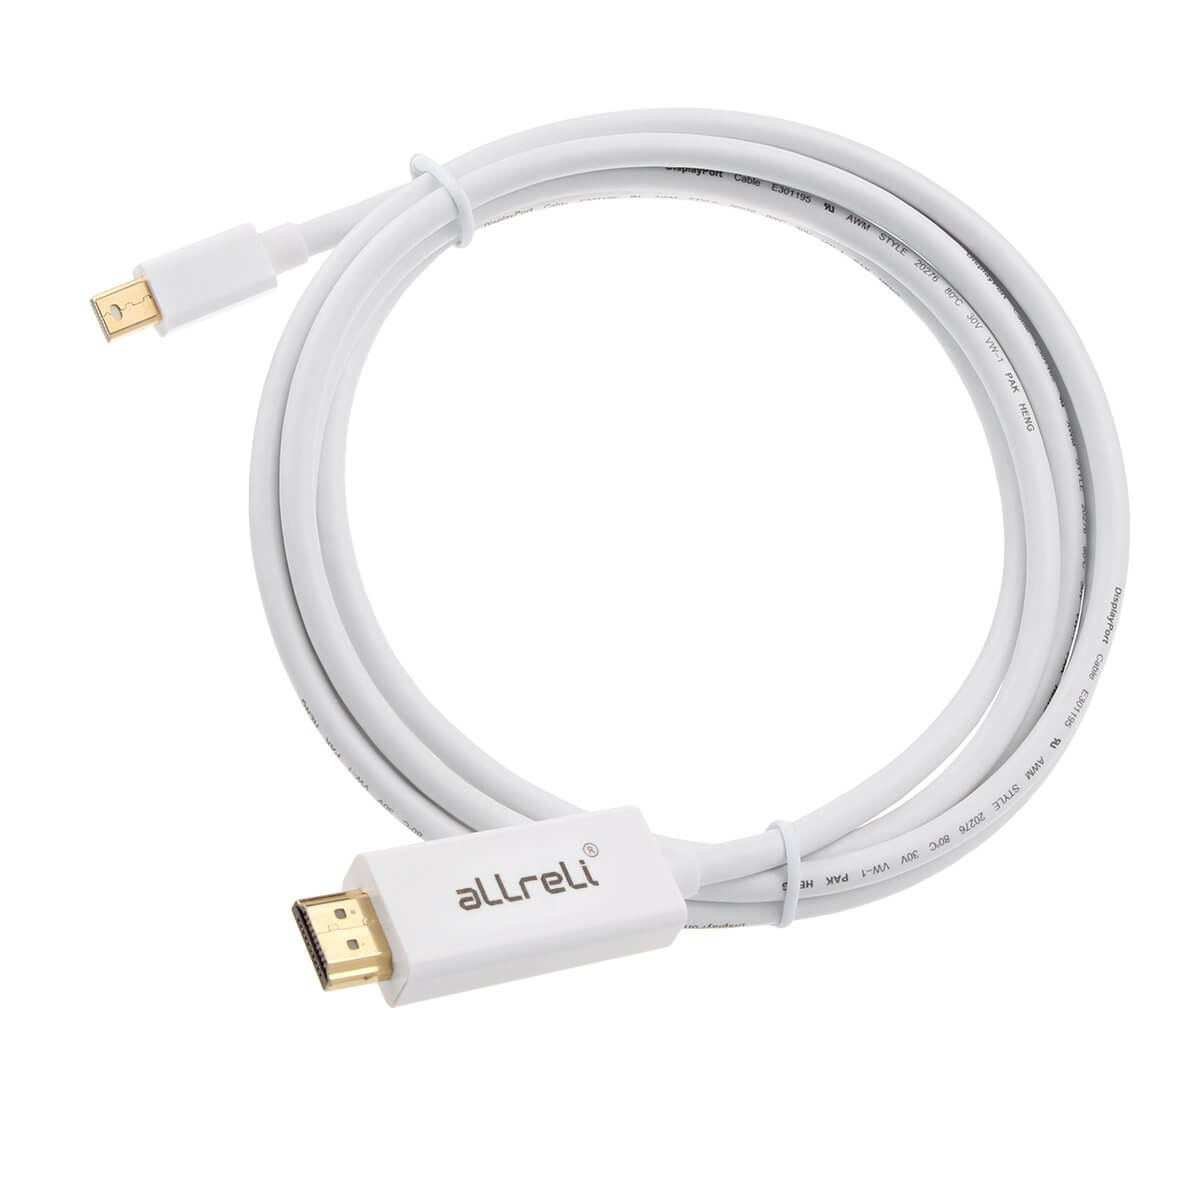 allreli 1 8m mini display port dp to hdmi cable adapter allreli technology. Black Bedroom Furniture Sets. Home Design Ideas